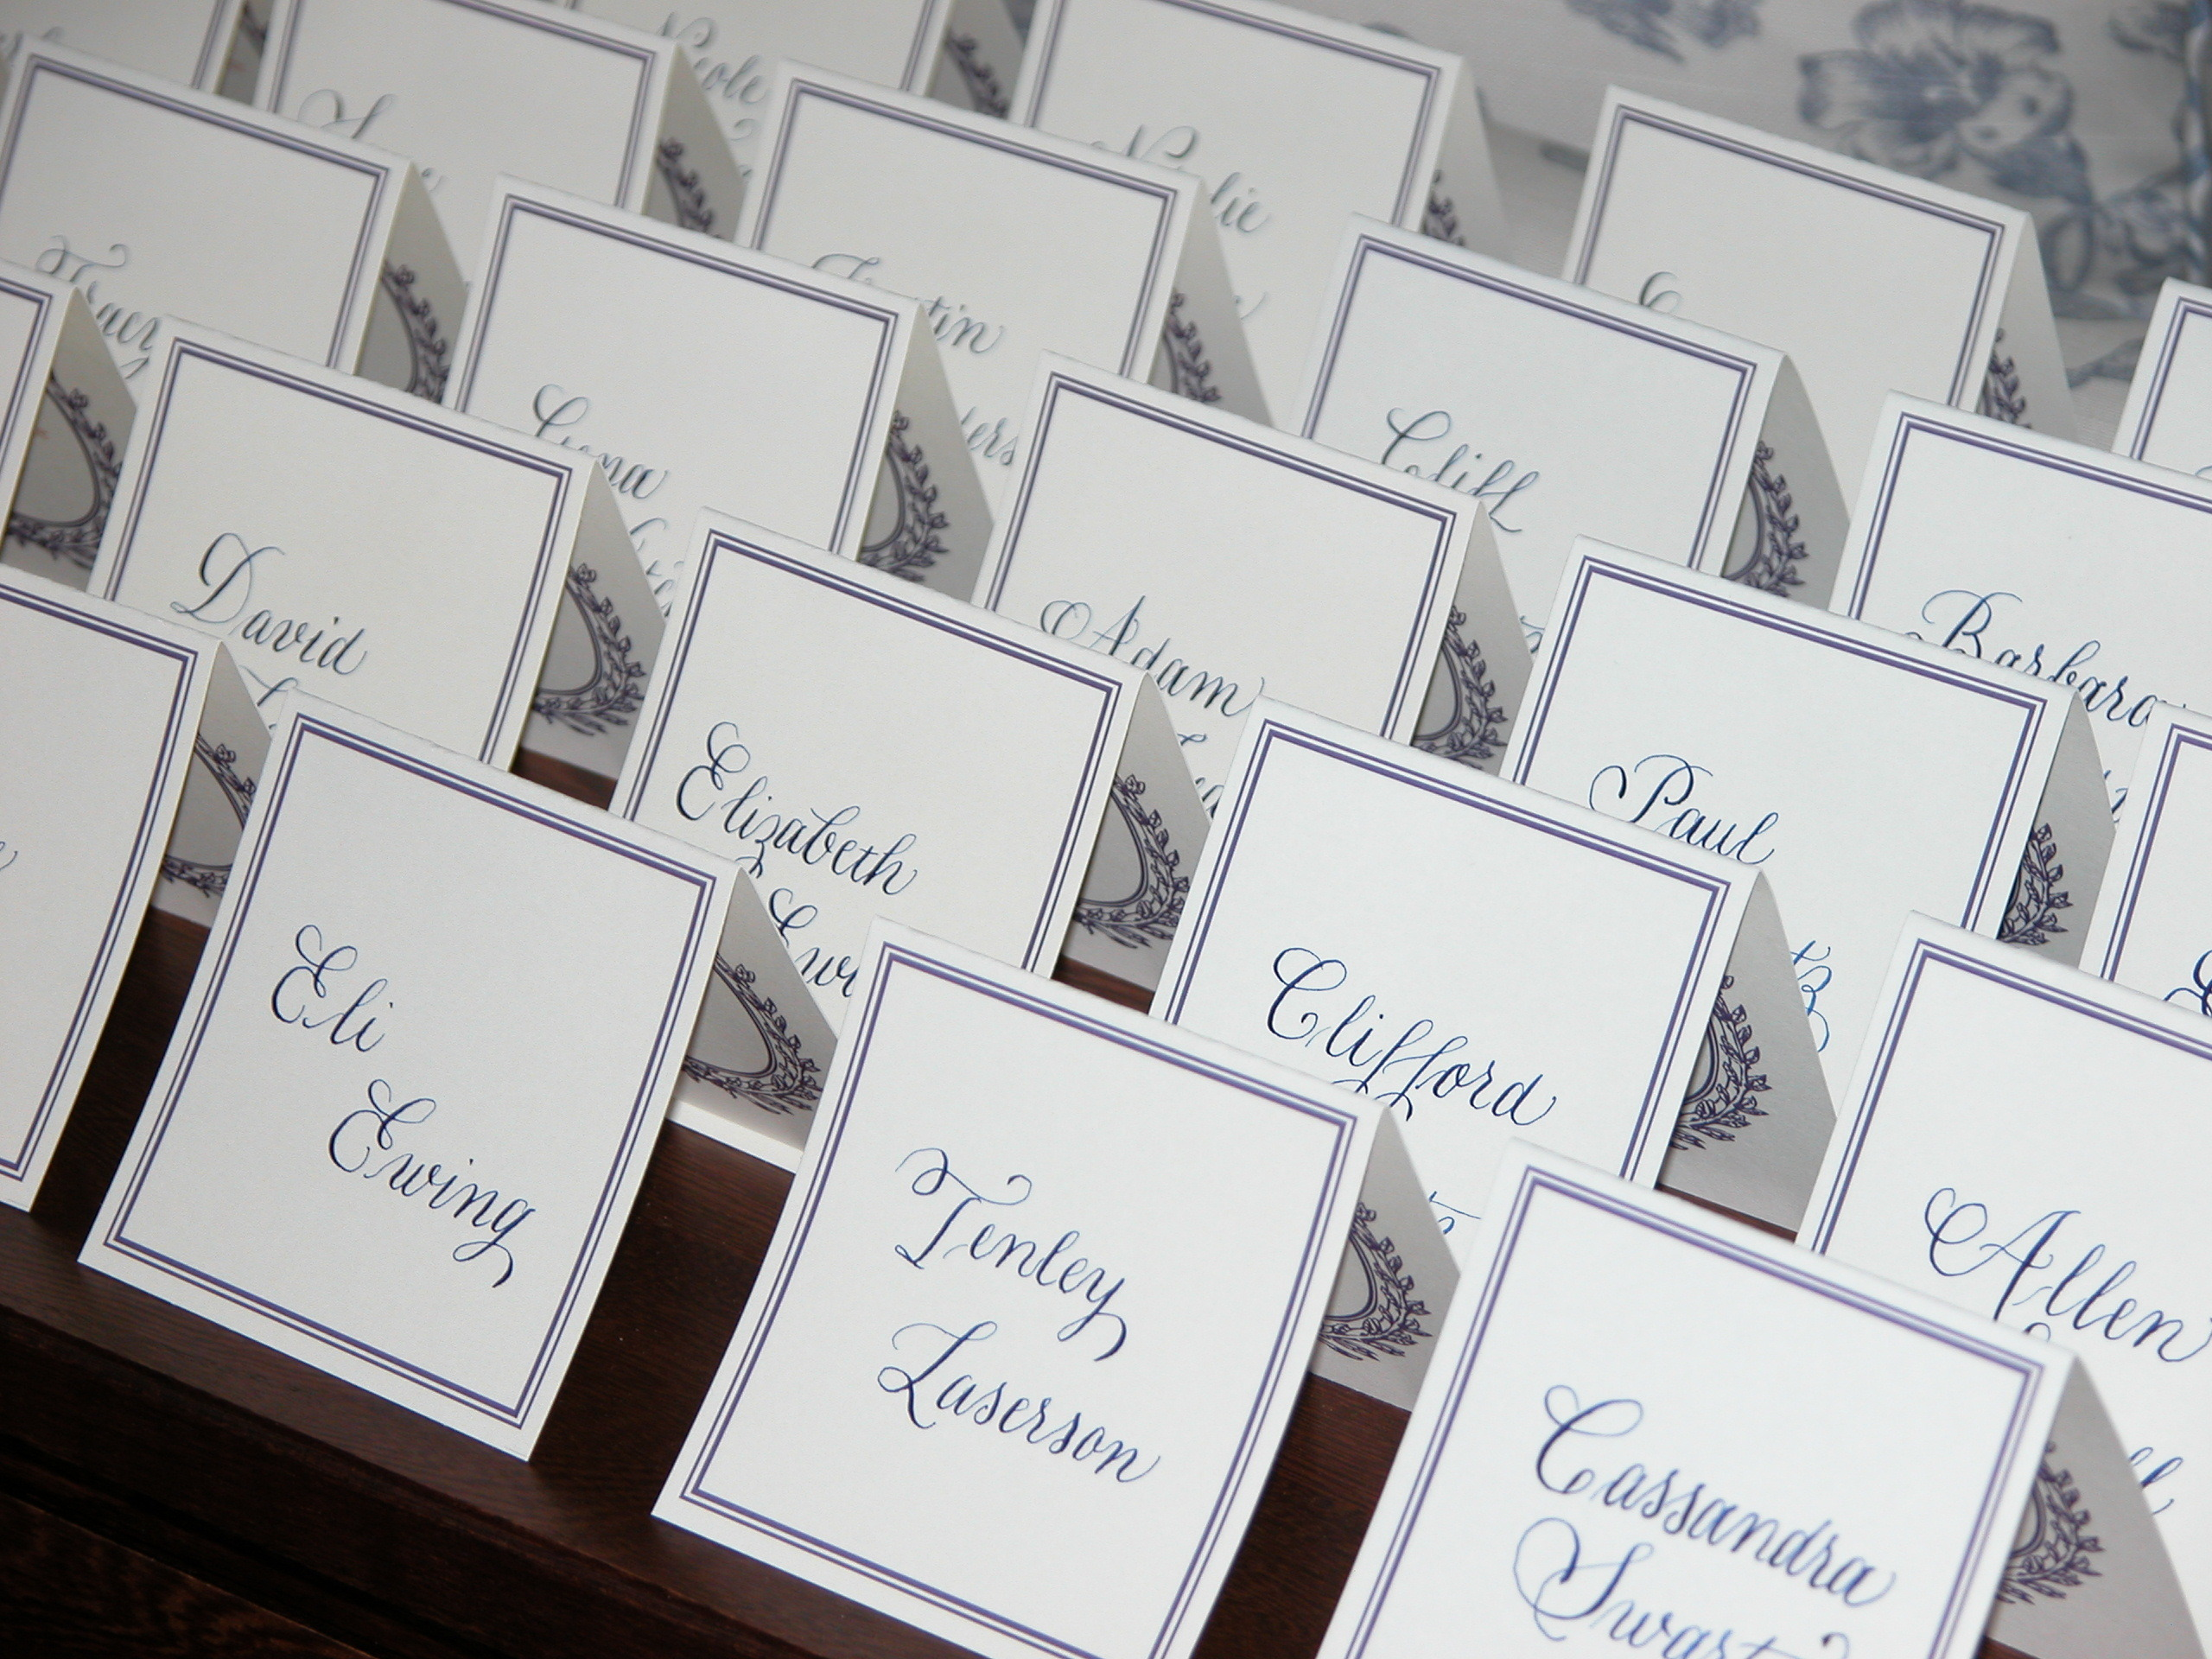 Inspiration, Reception, Flowers & Decor, Calligraphy, Stationery, white, blue, brown, black, silver, Invitations, Cards, Board, Place, Connecticut calligraphy